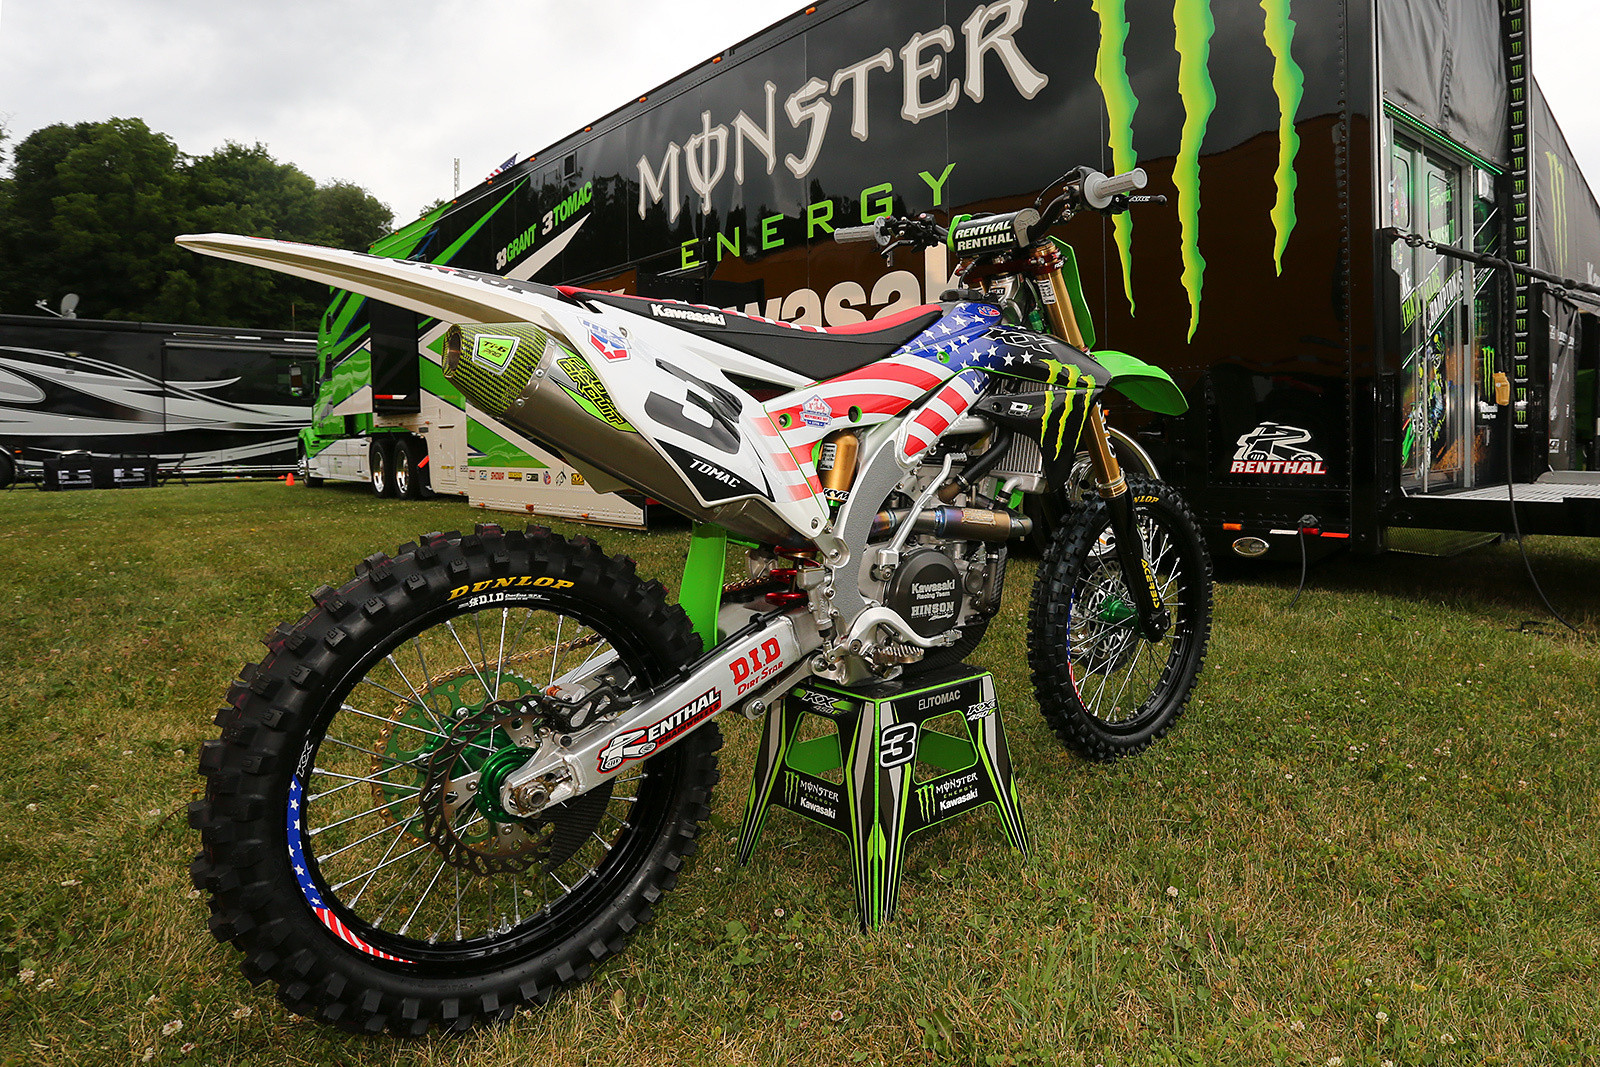 There's always lots of red, white, and blue to go along with the Independence Day weekend, and this year was no exception. Monster Energy Kawasaki had their bikes done up in the patriotic colors, as well as some custom team hats for the crew.